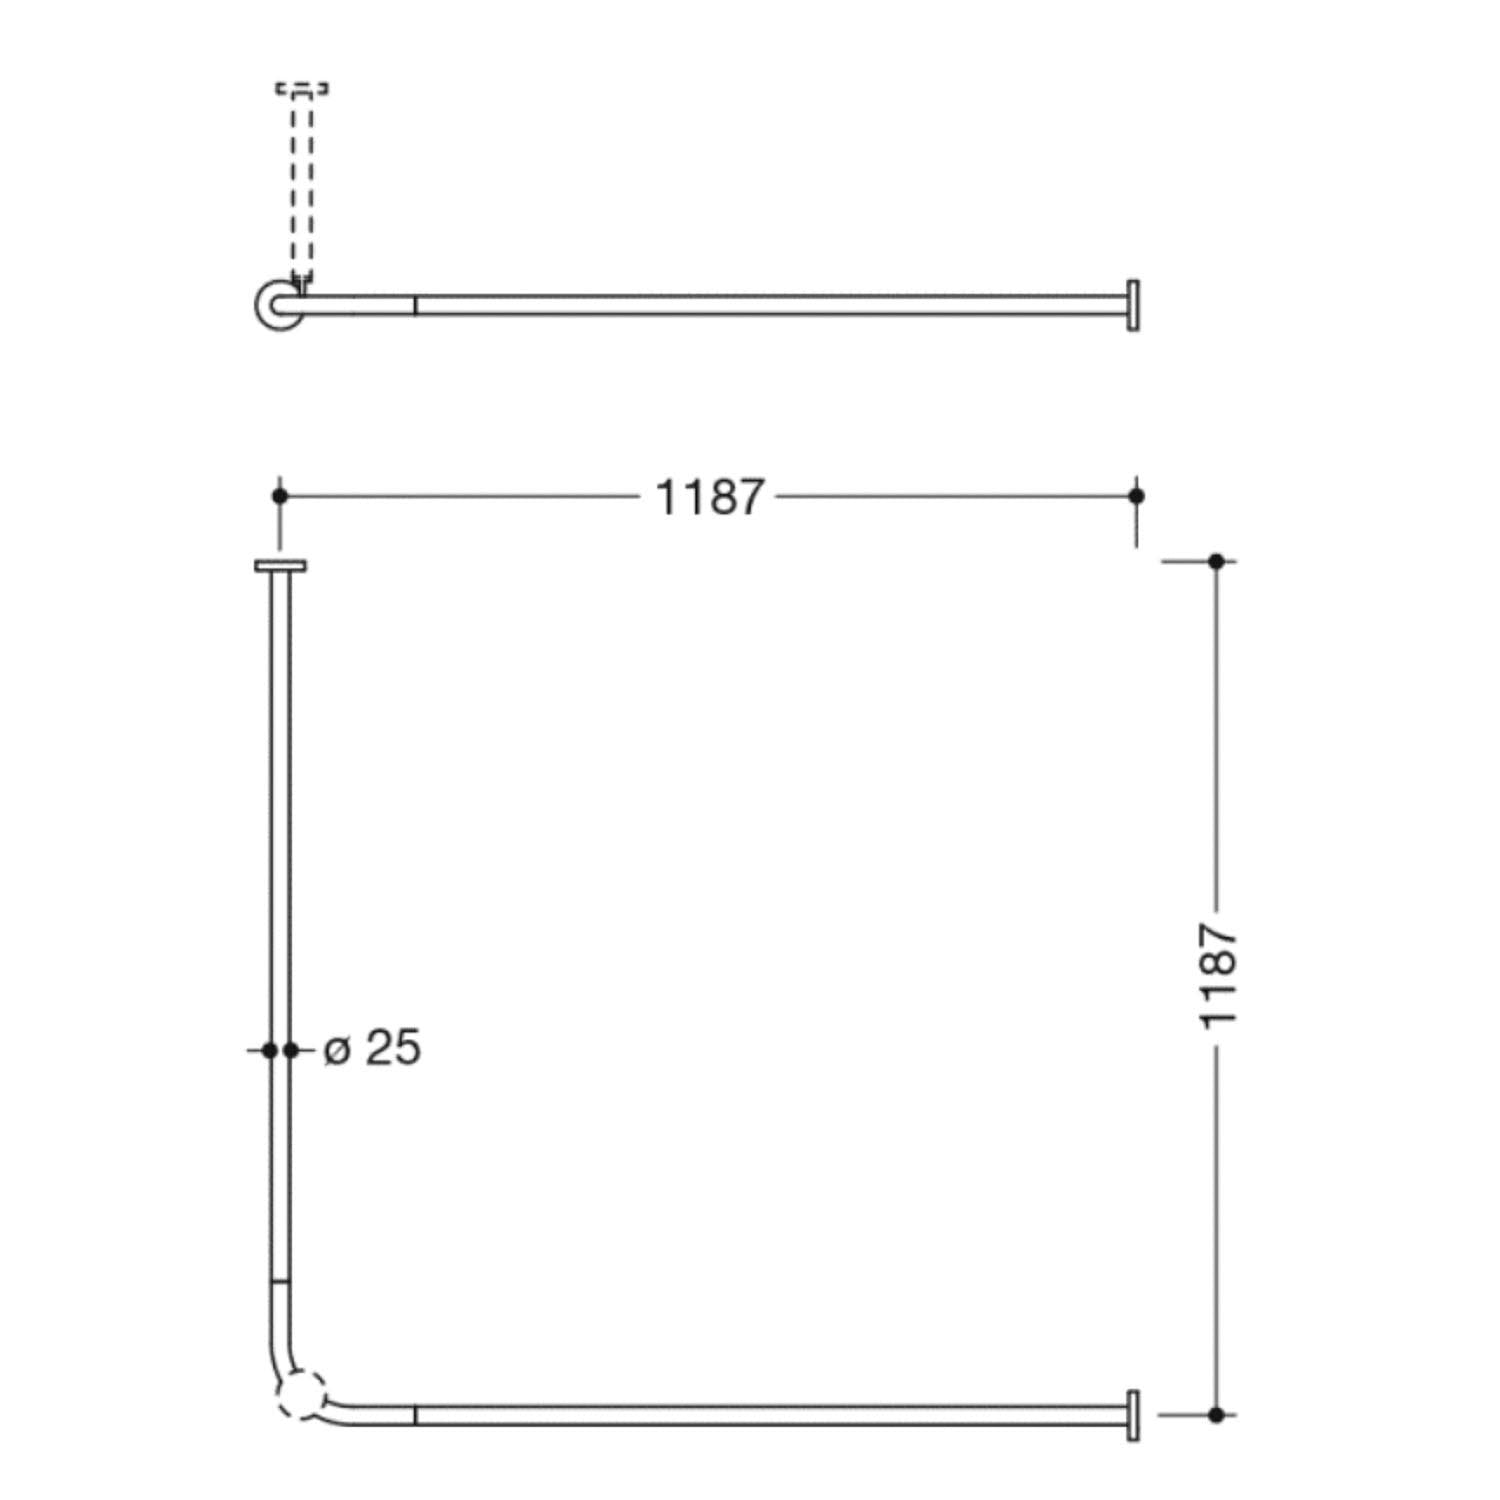 1200mm L-Shaped Shower Curtain Rail with a chrome finish dimensional drawing